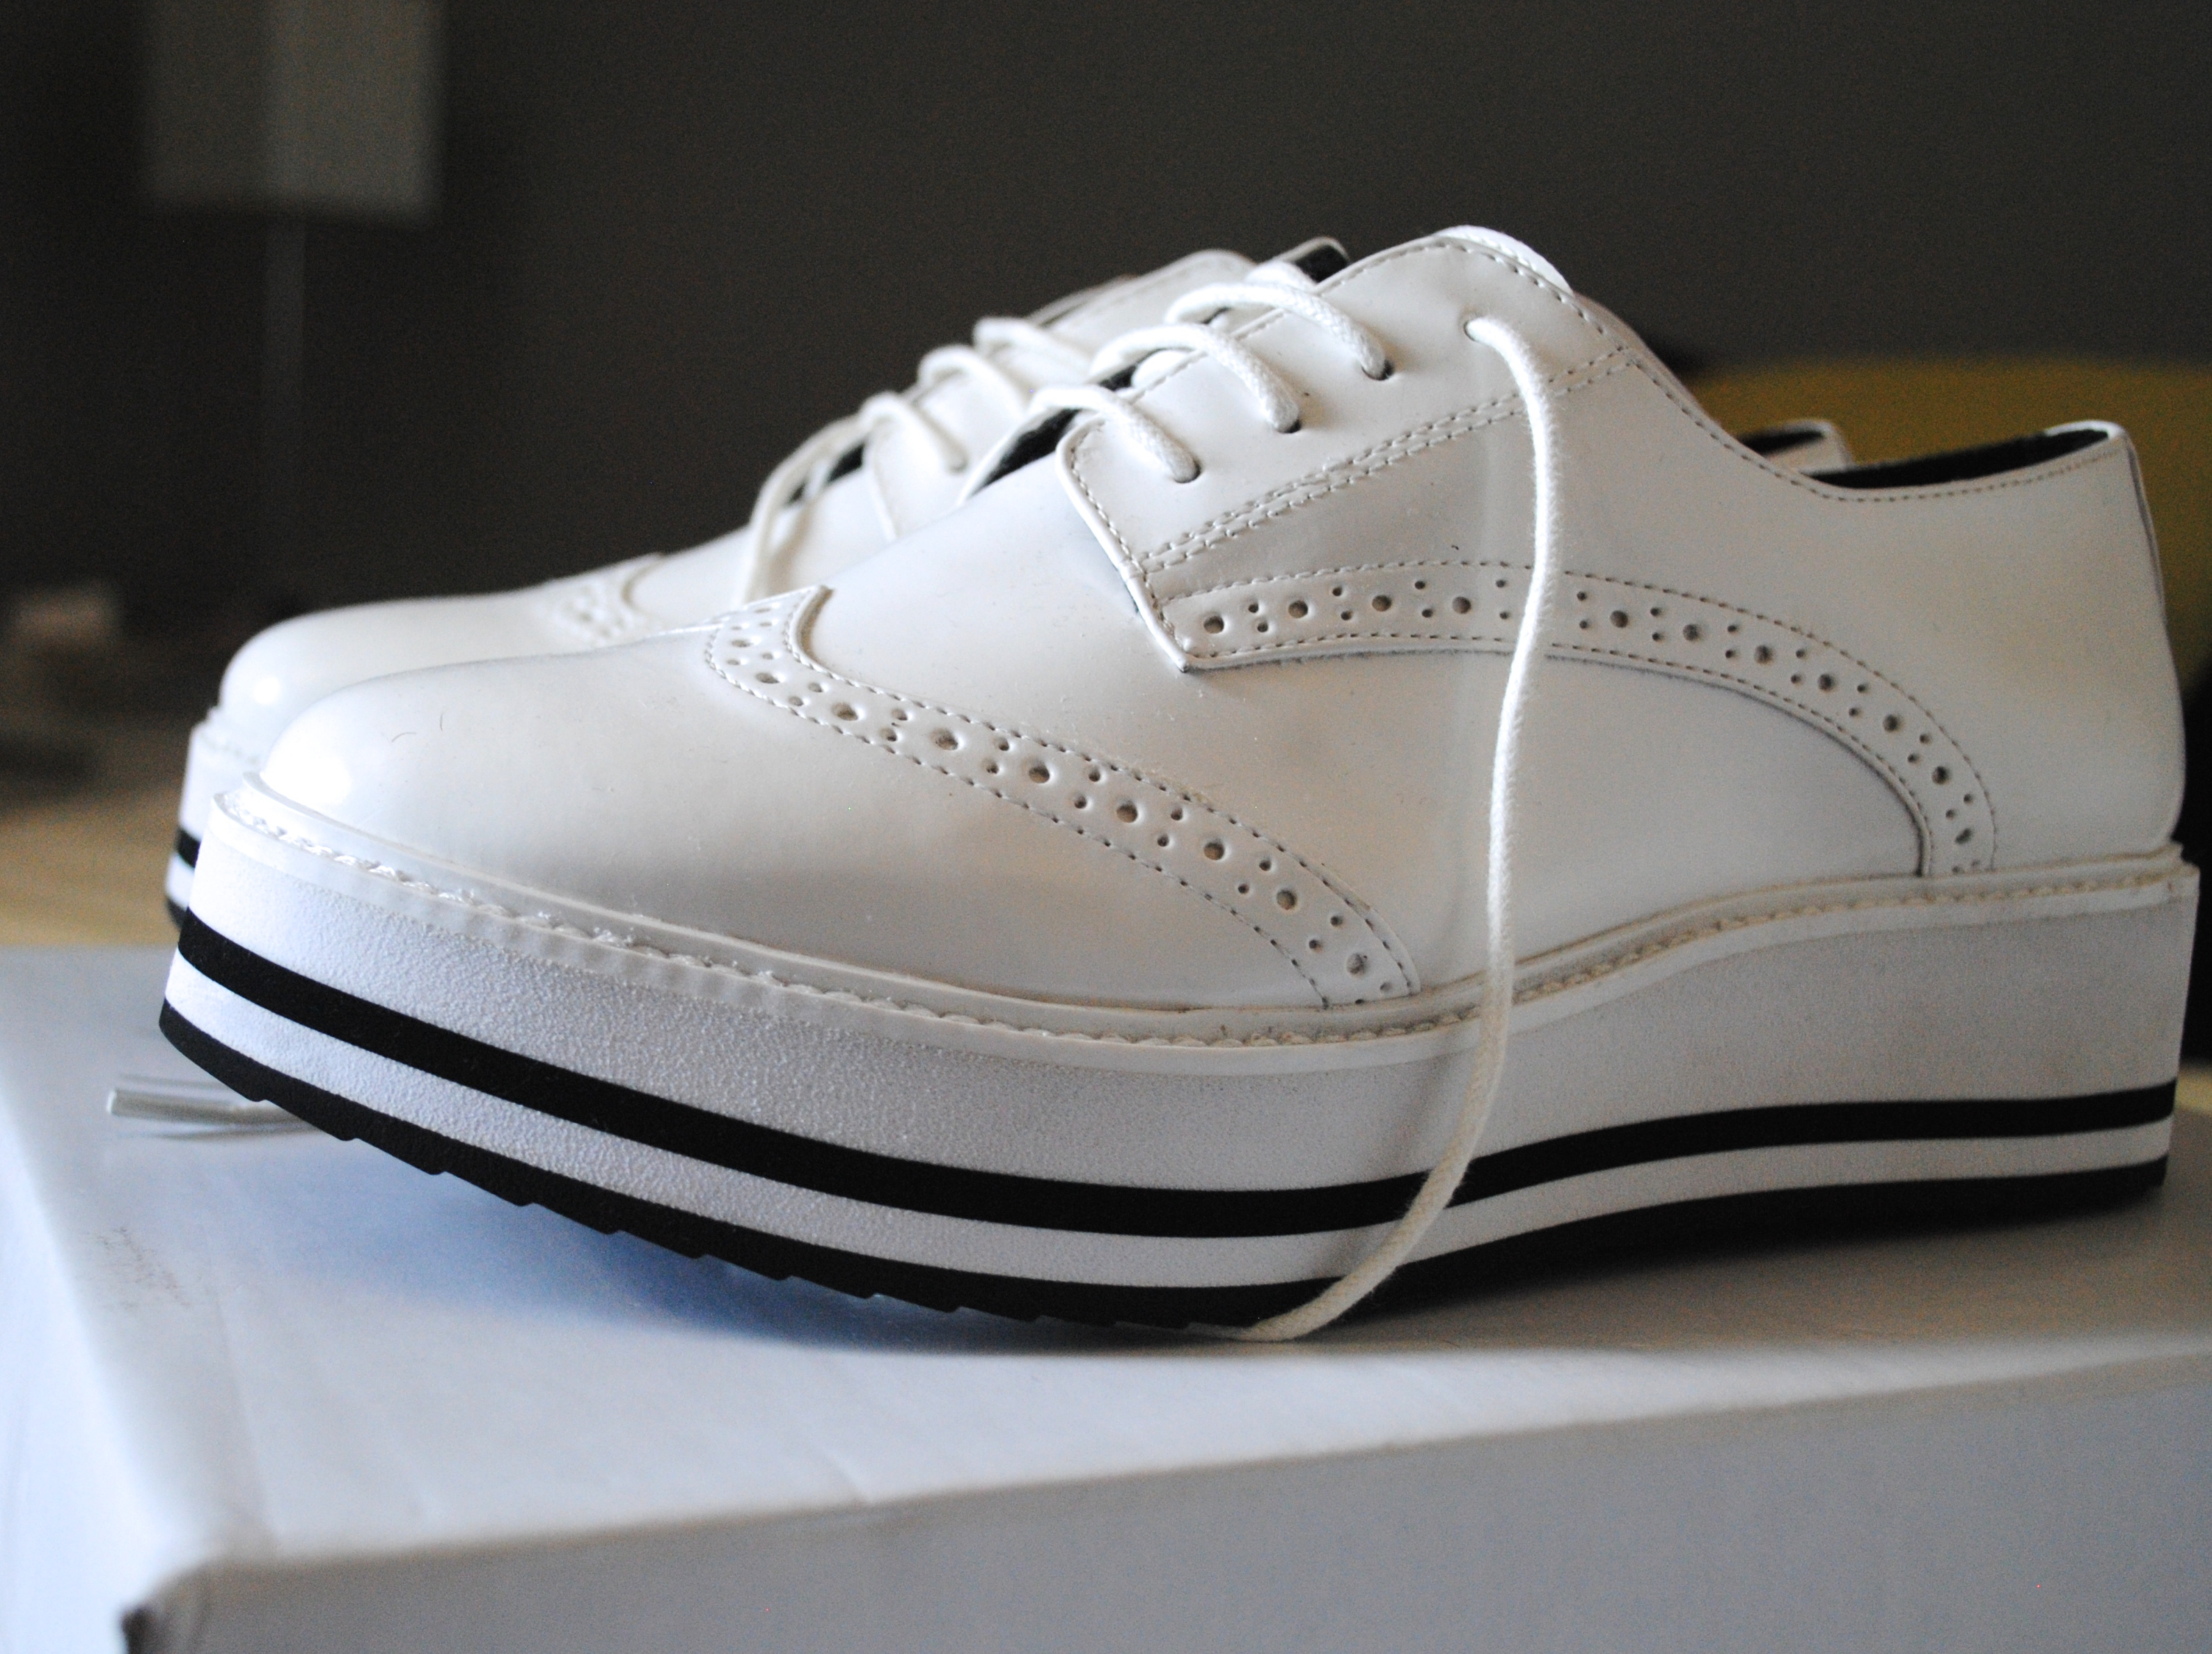 monochrome oxford shoes